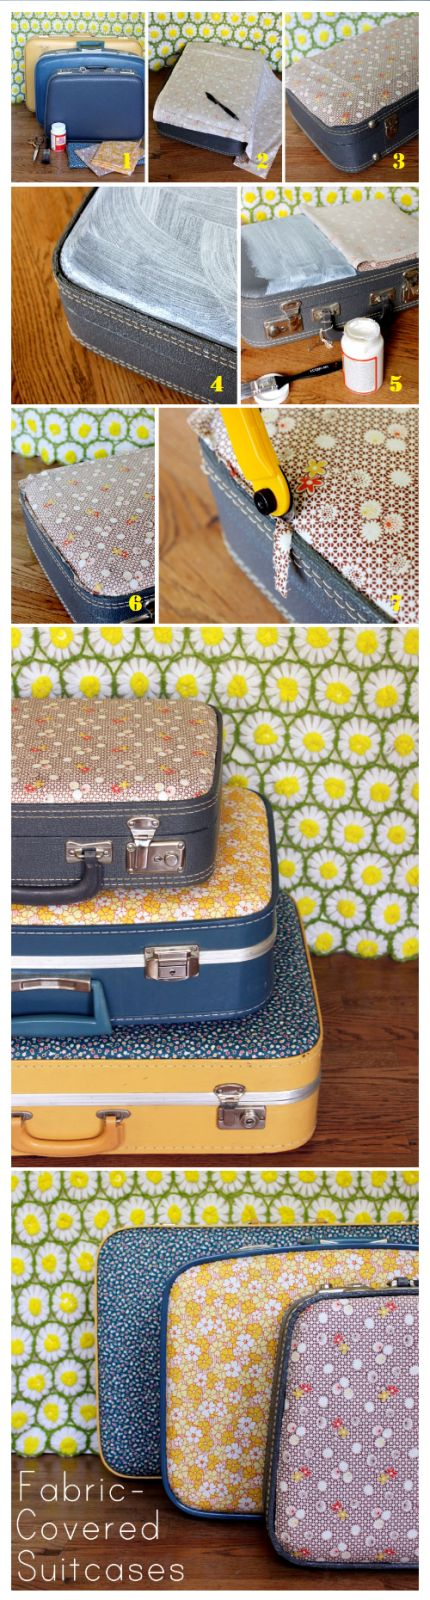 DIY fabric-covered vintage suitcases... for use or for decoration!